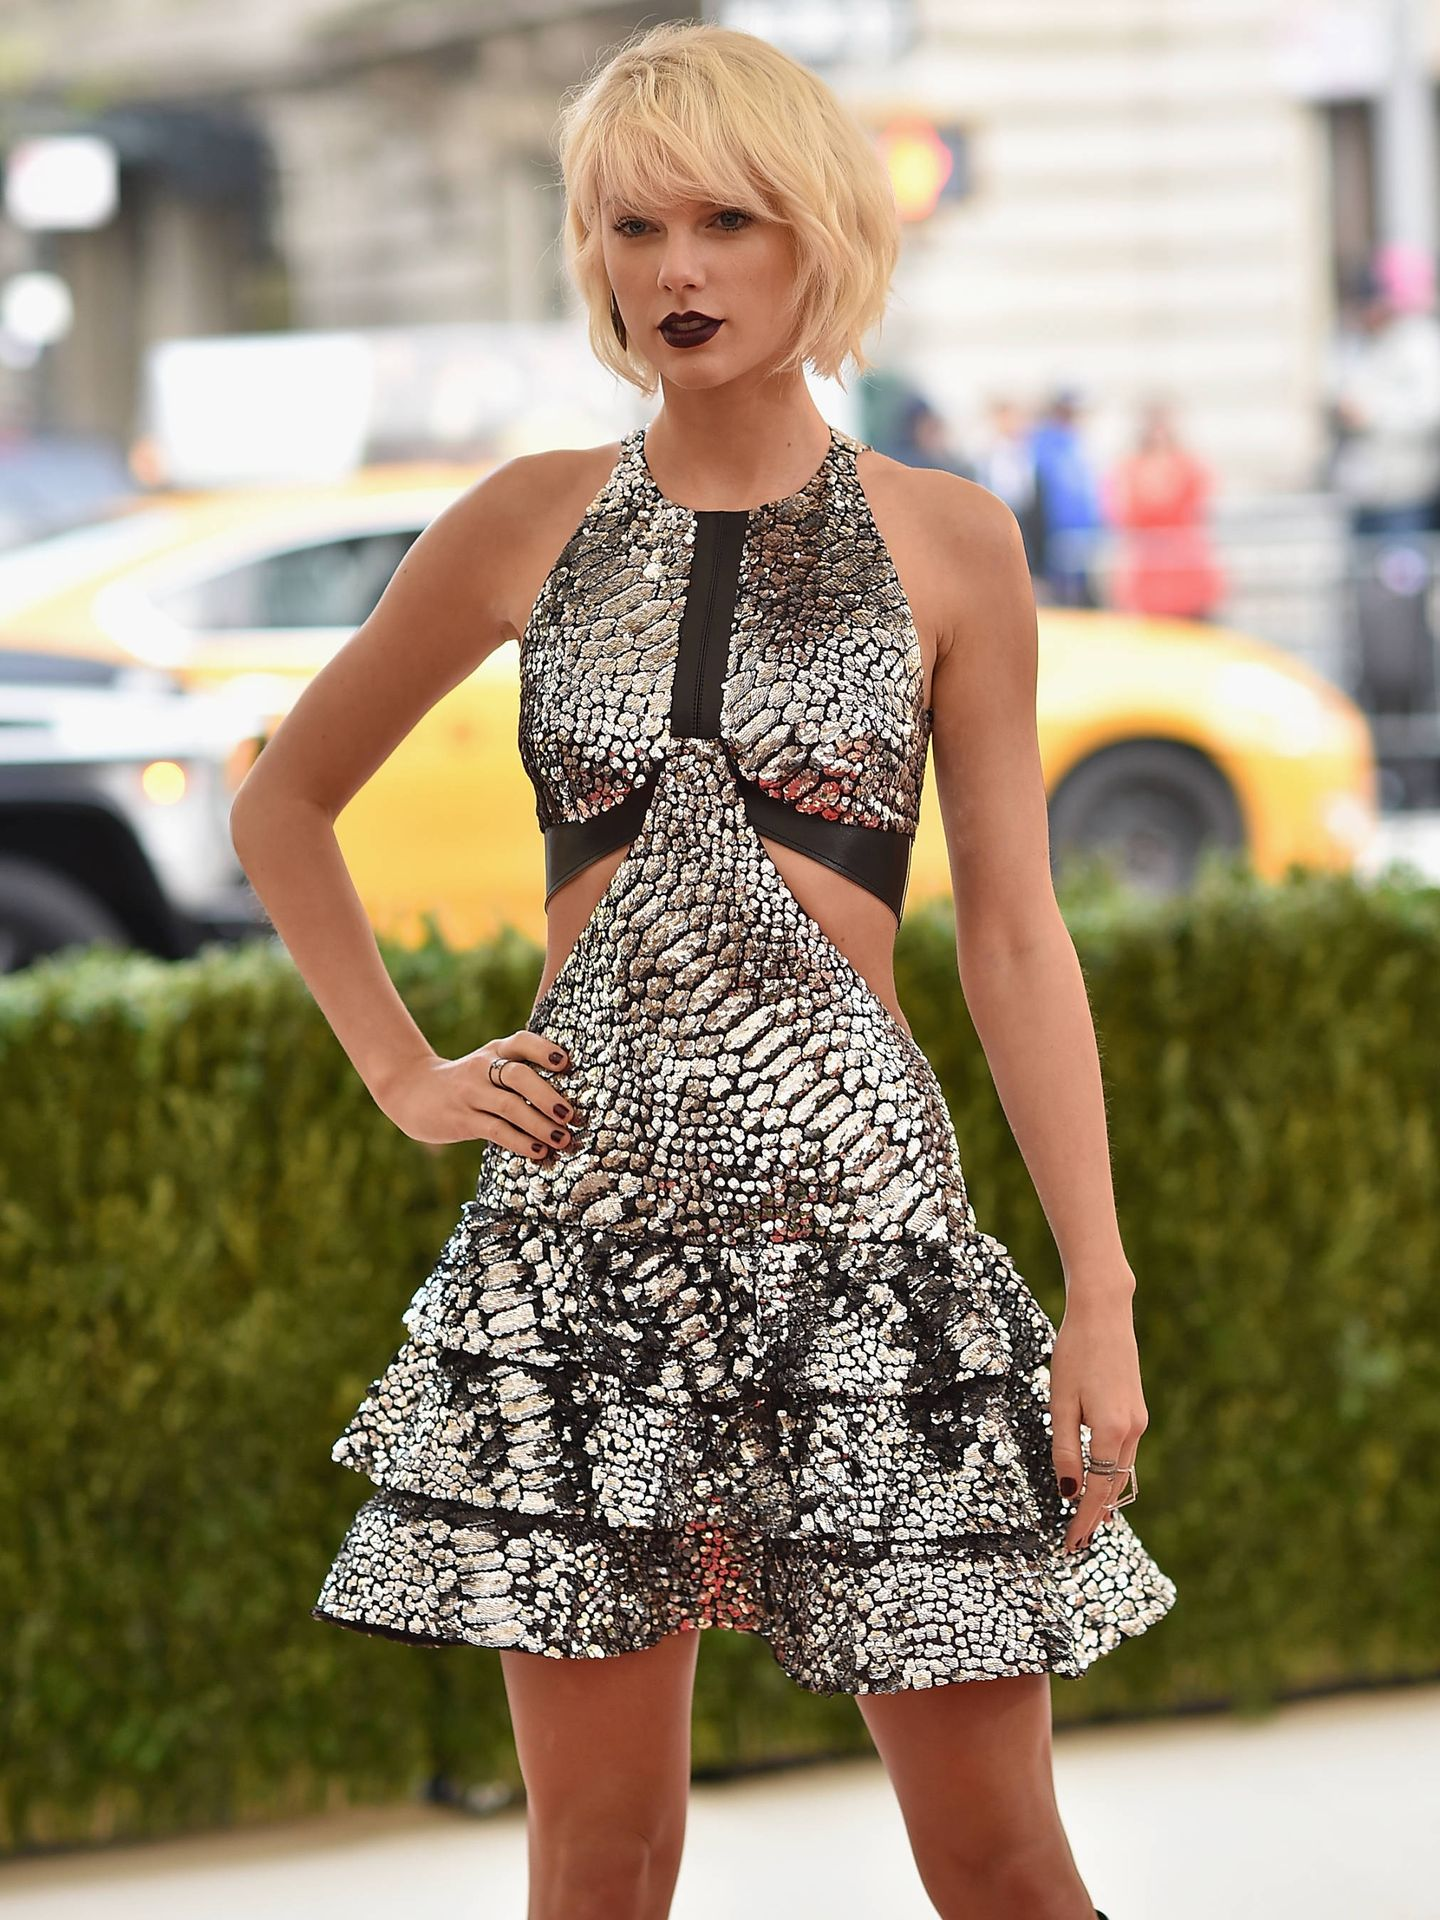 Taylor Swift (Dimitrios Kambouris/Getty Images).